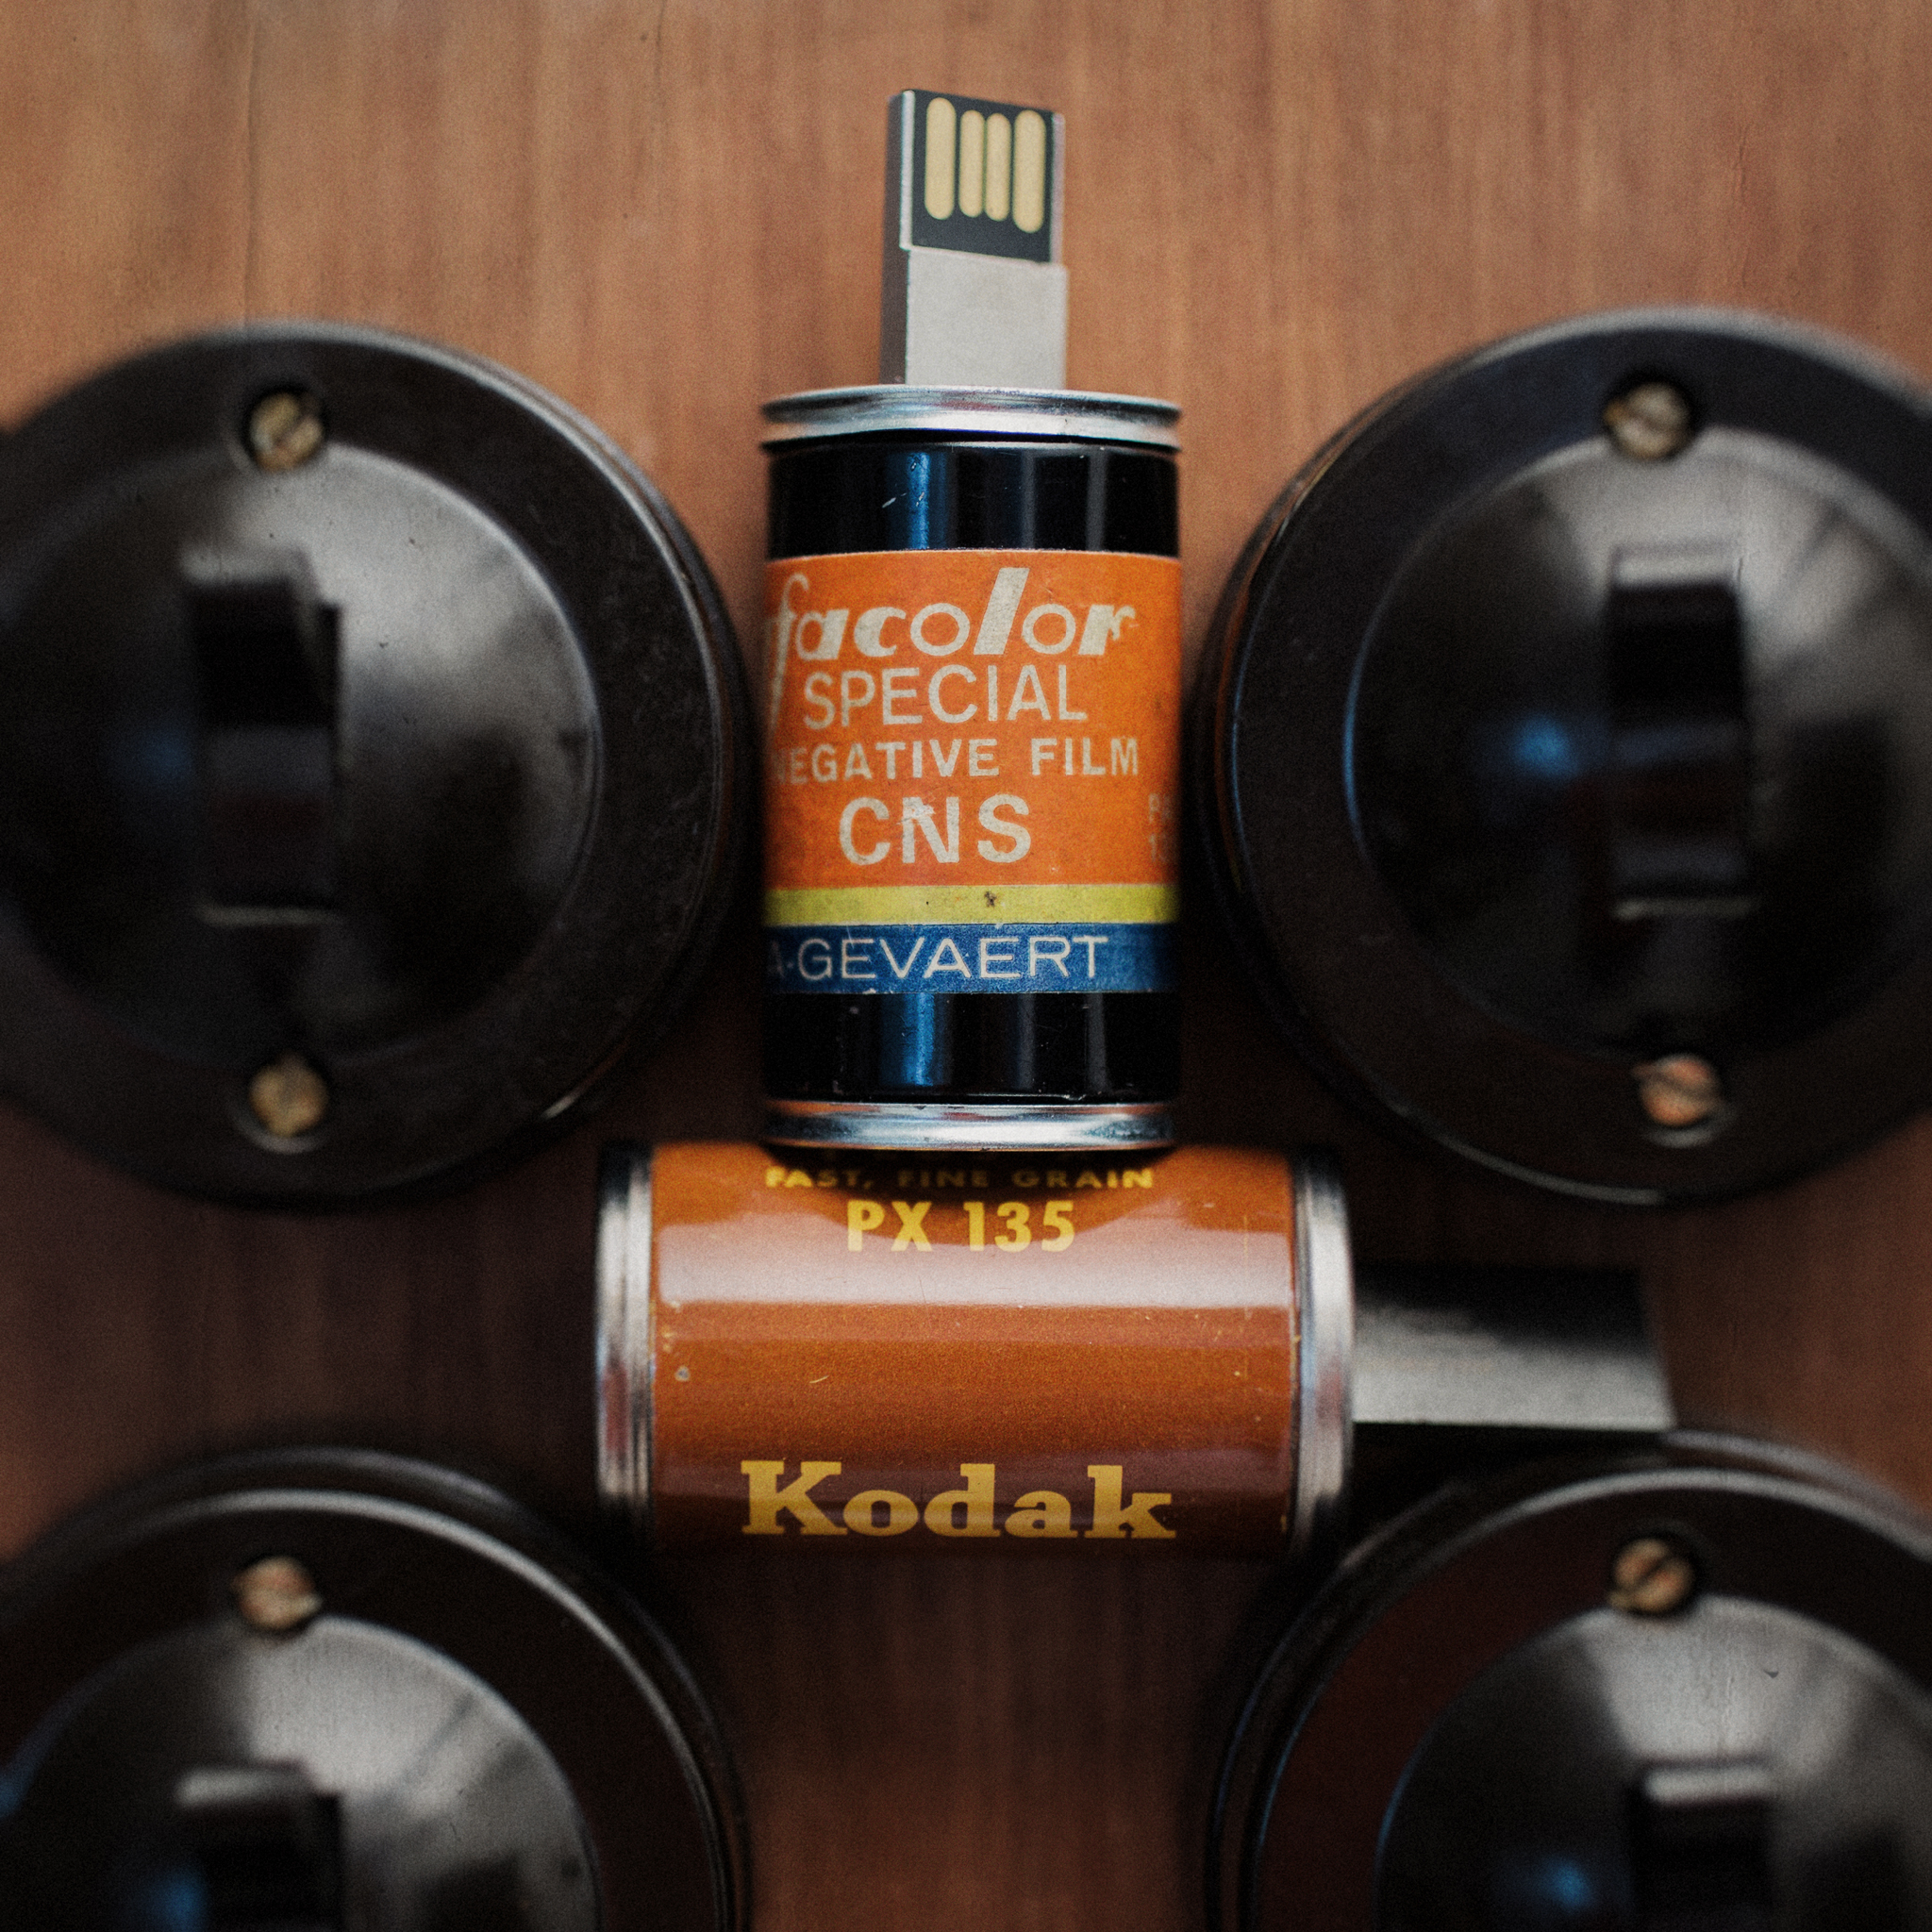 Vintage Film Canister USB Drives made from genuine vintage 35mm film canisters